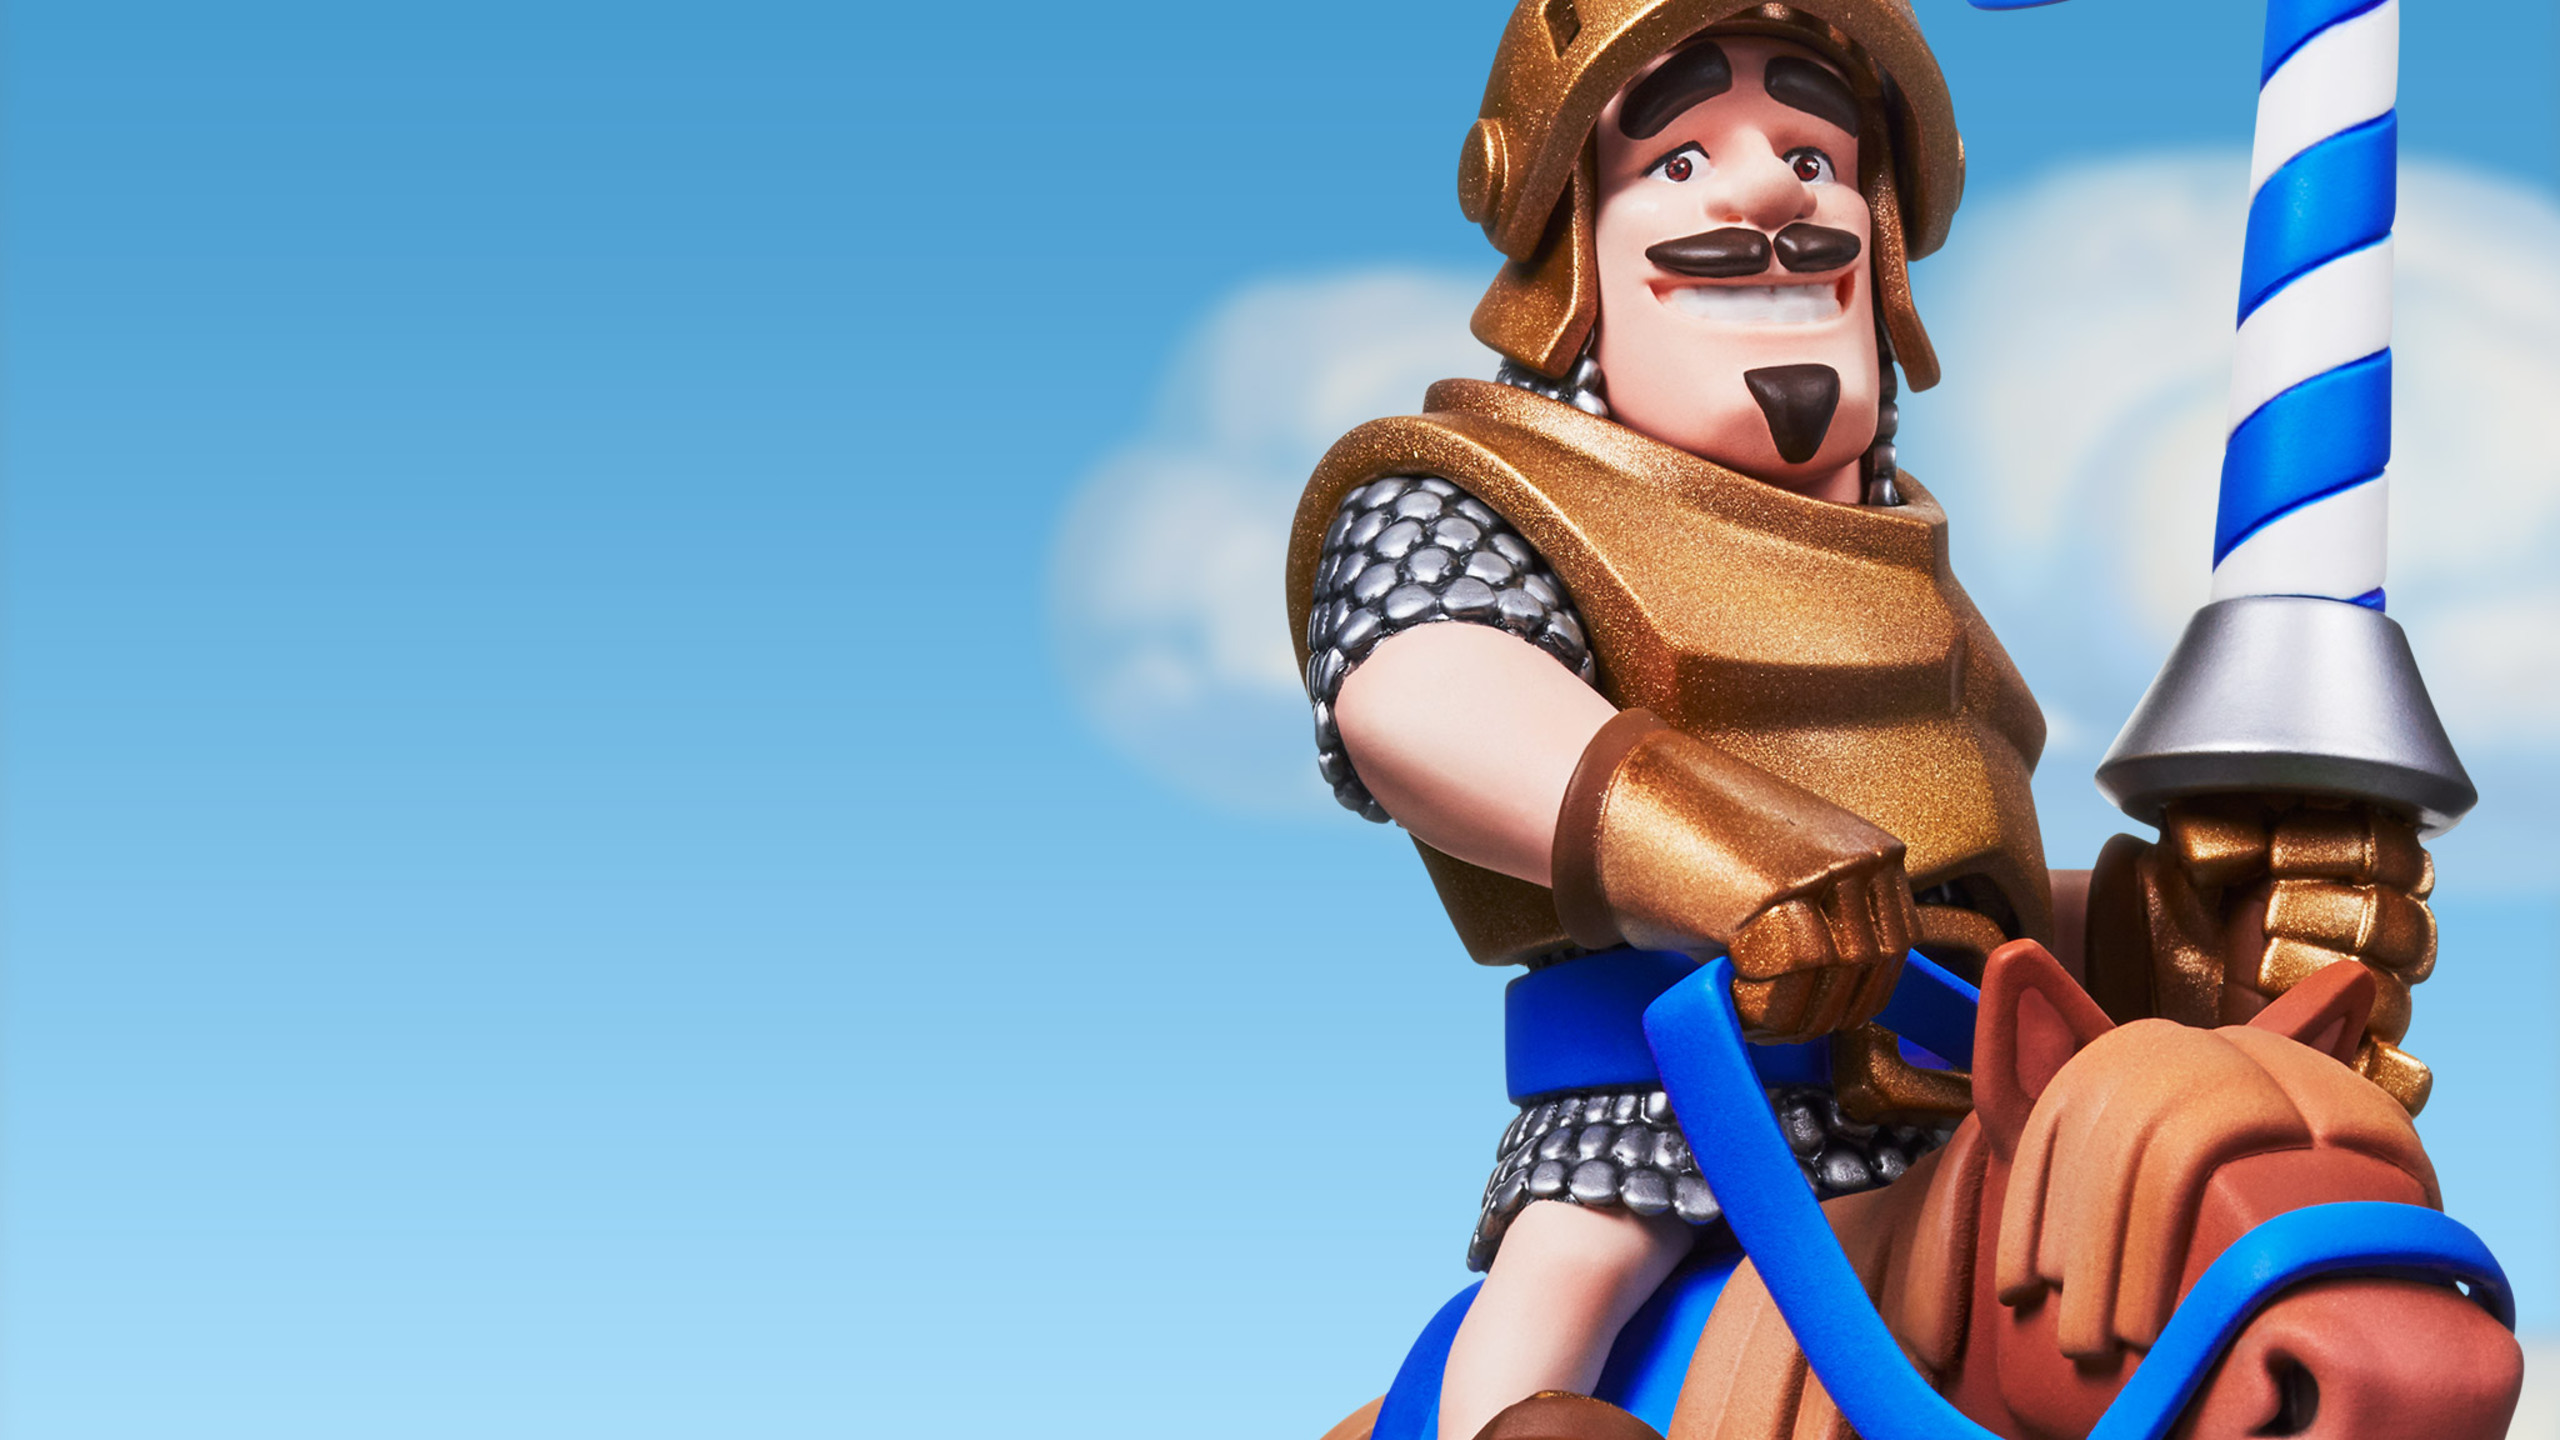 2560x1440 clash royale prince 1440p resolution hd 4k wallpapers images backgrounds photos and - Clash royale 2560x1440 ...